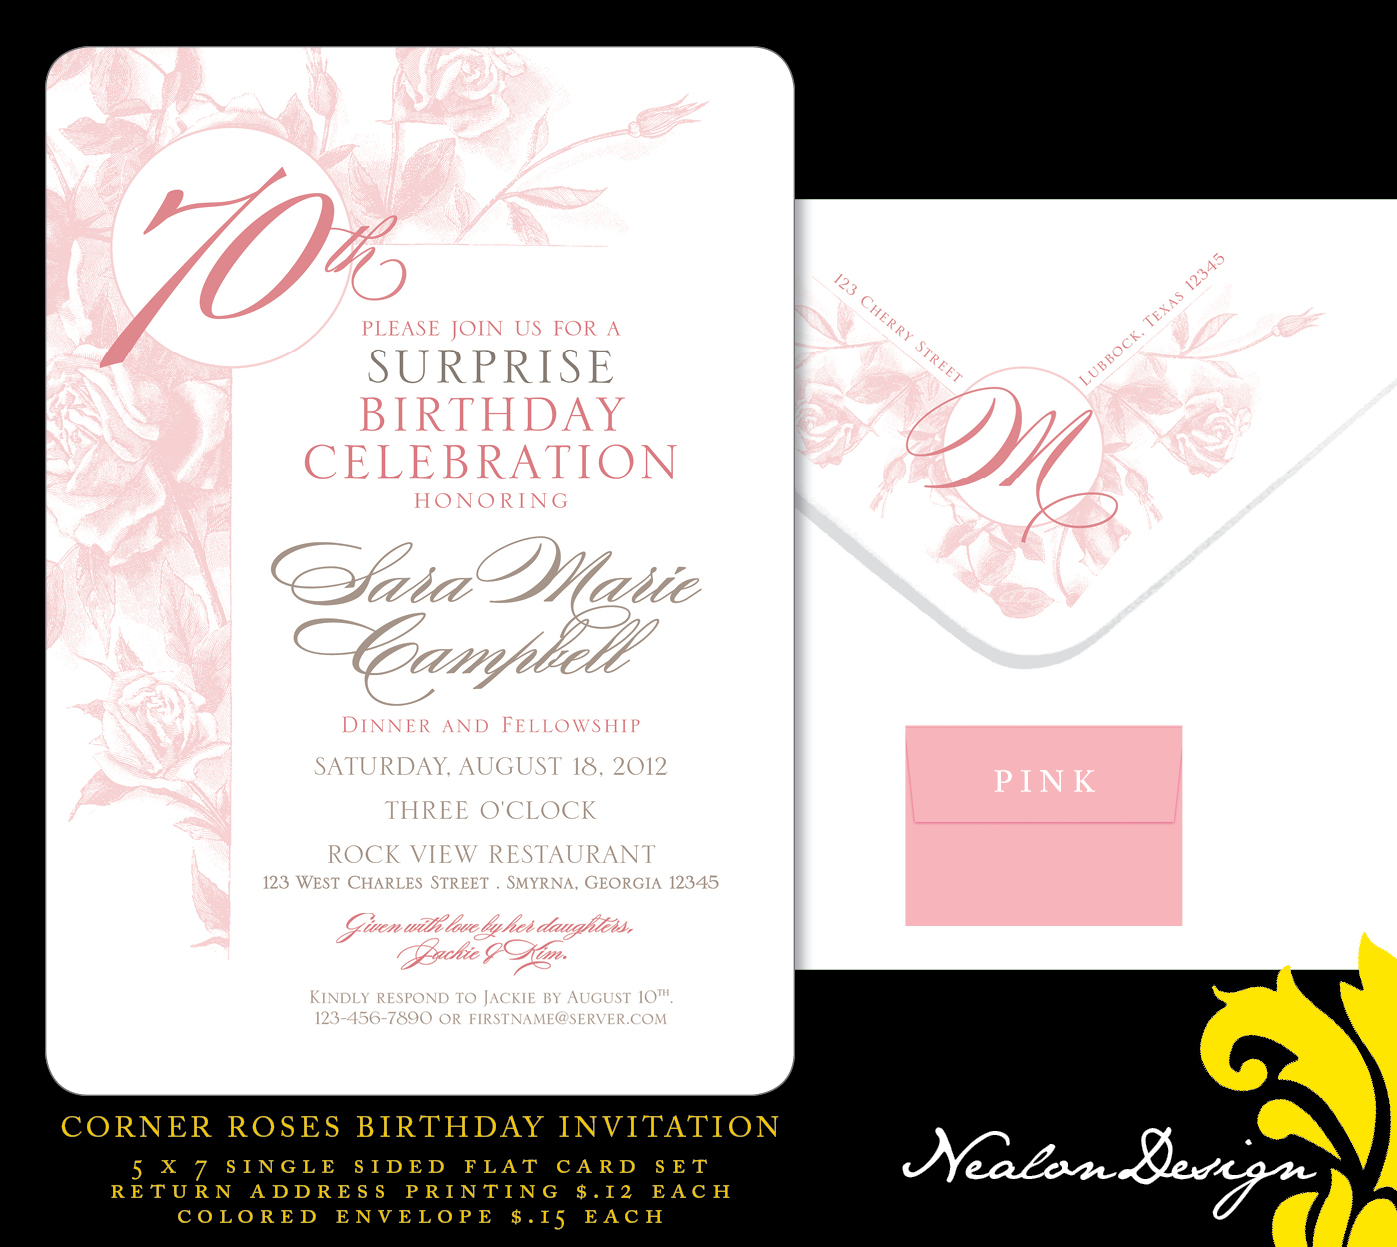 Birthday Quotes For Invitations: Quotes For 70th Birthday Invite. QuotesGram